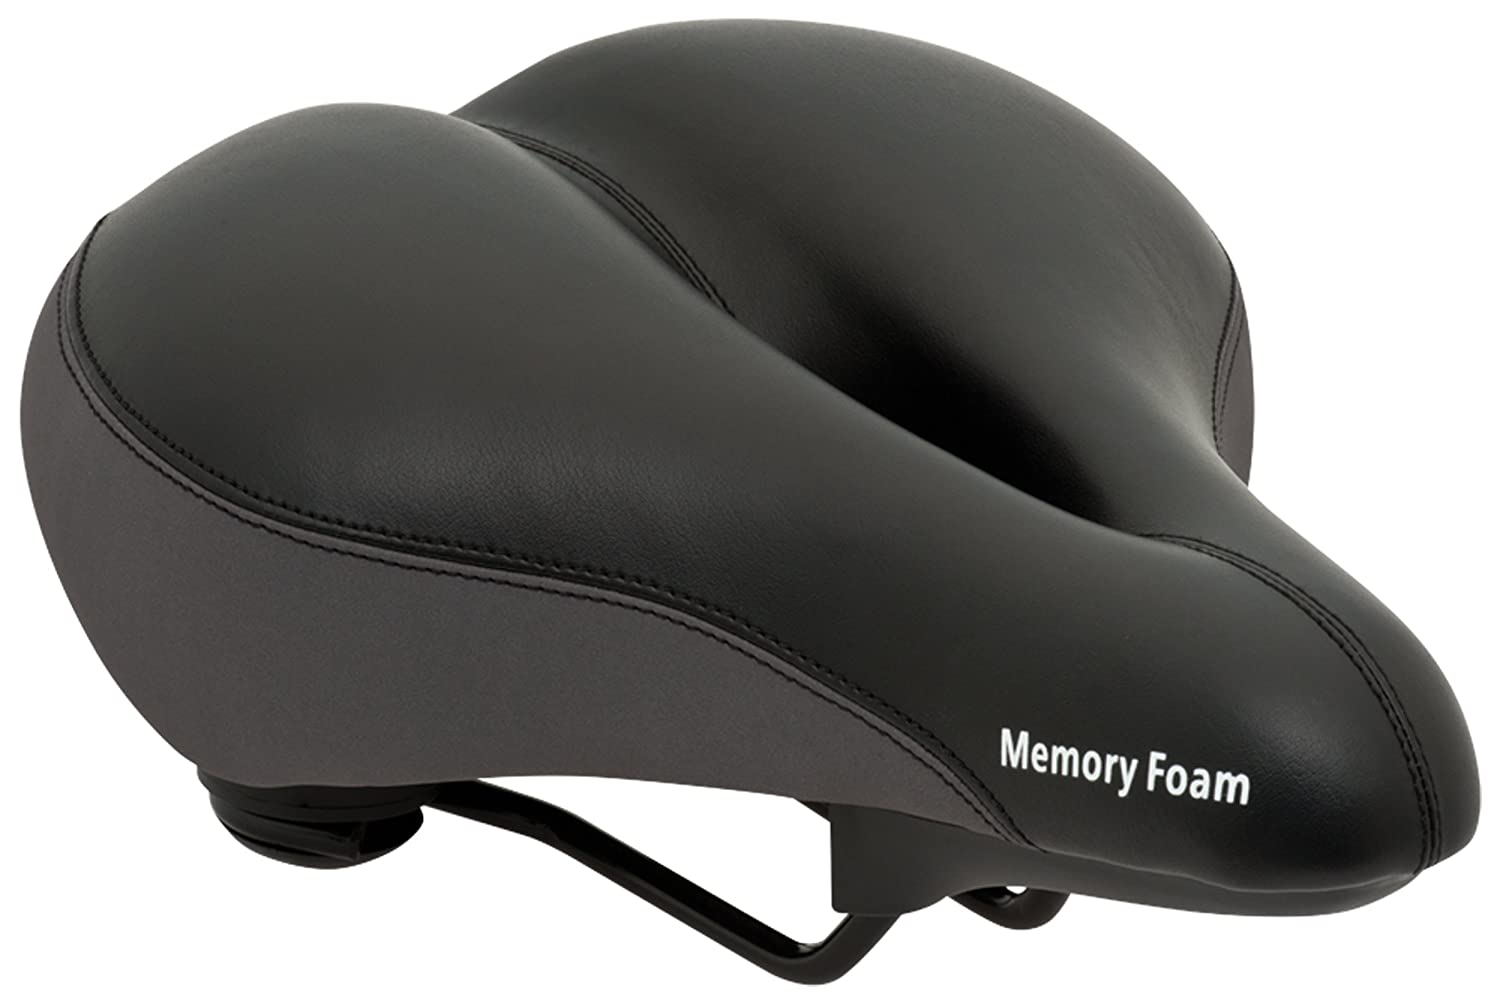 Bikes For Extra Large People Memory Foam Bike Seat